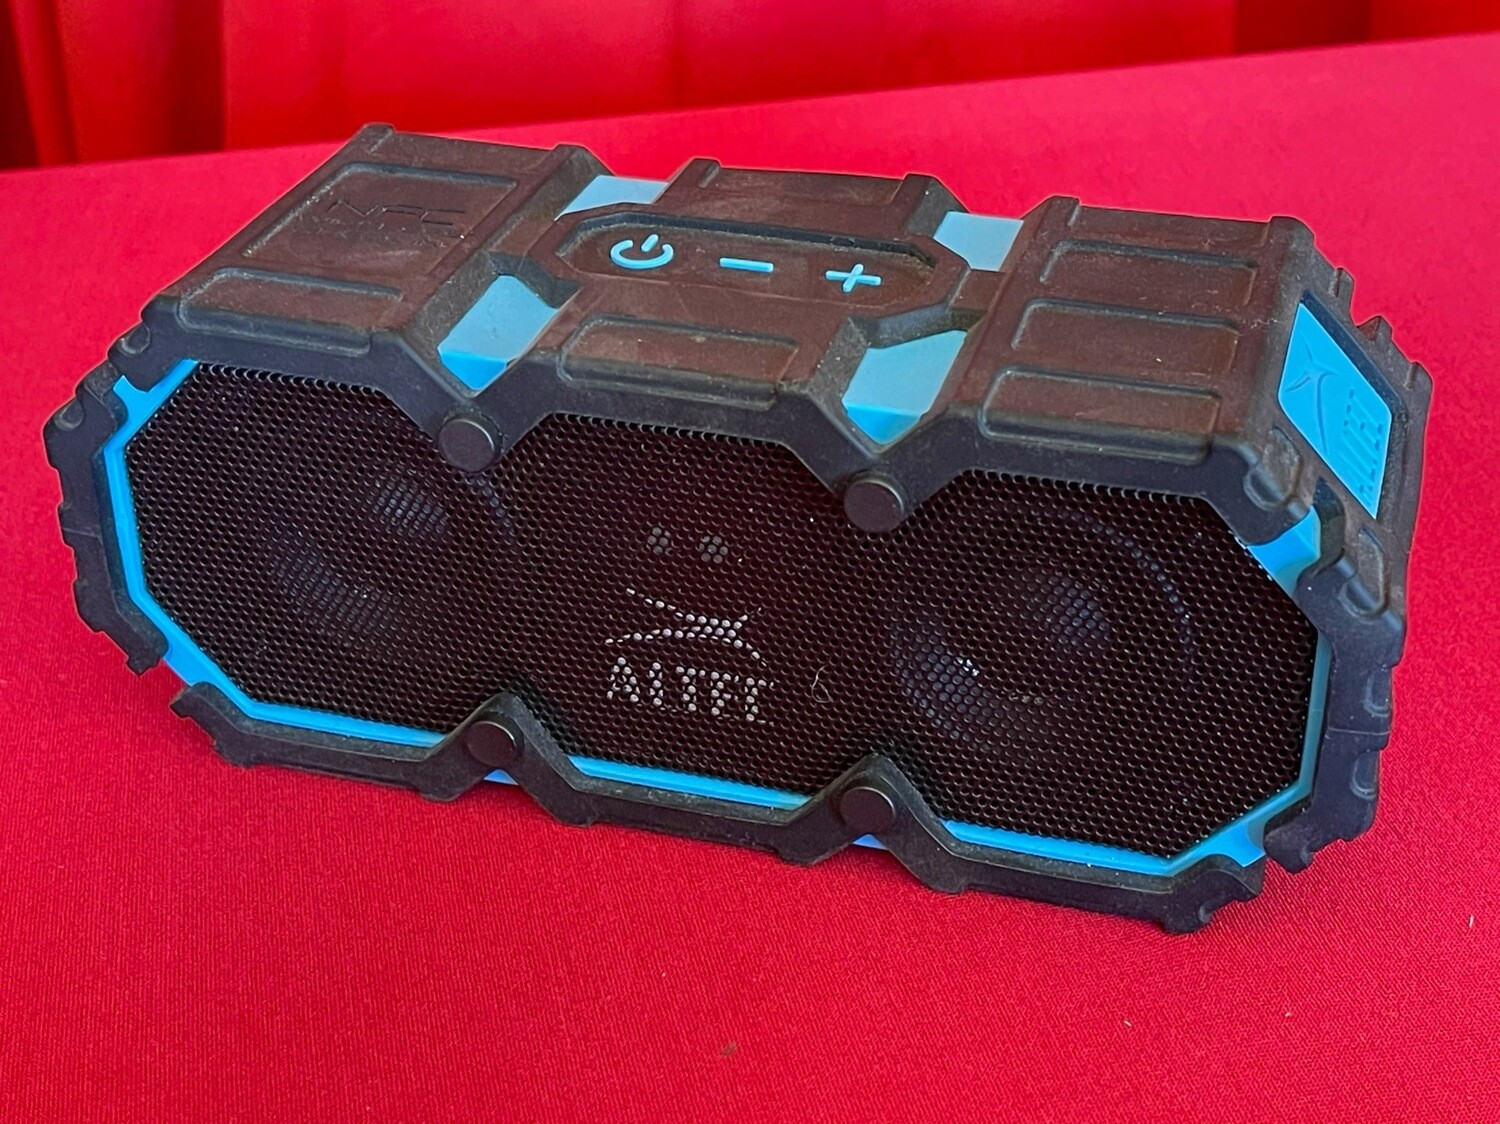 Altec life jacket Bluetooth speaker imw575